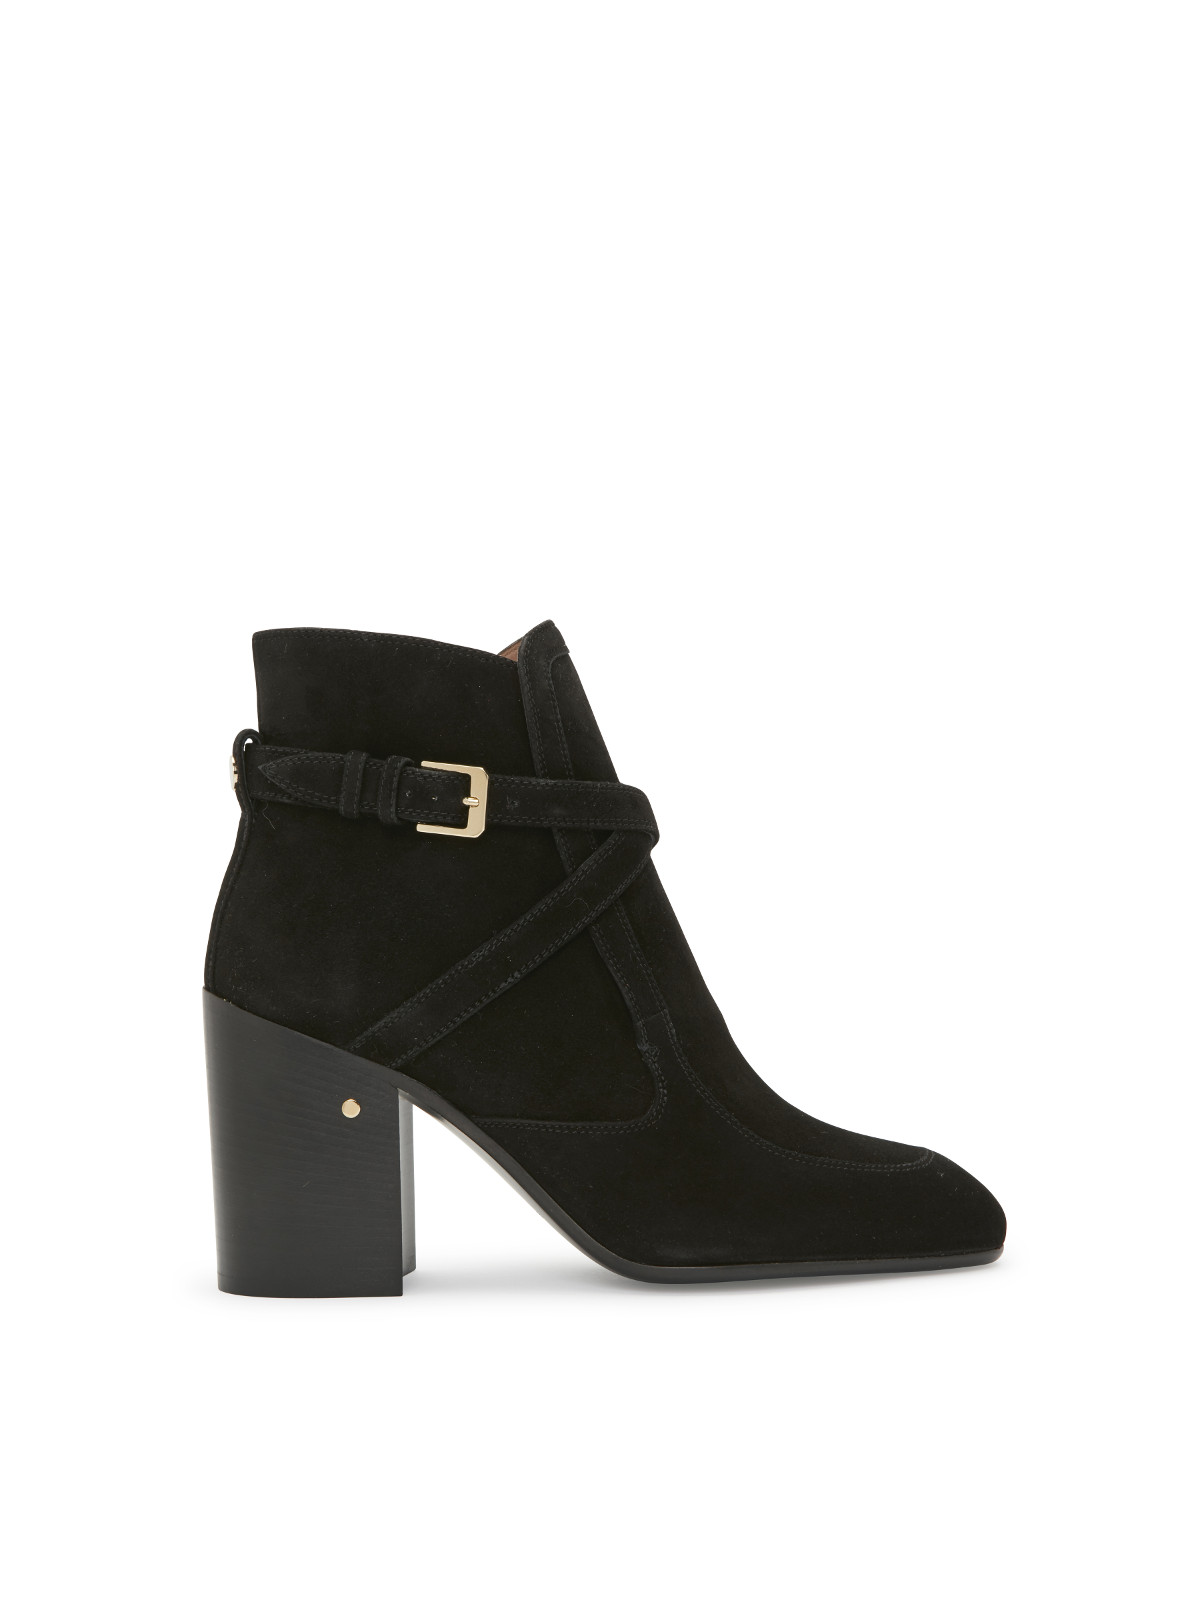 27PF19_Tonia_Kid Suede_Black_3881.jpg